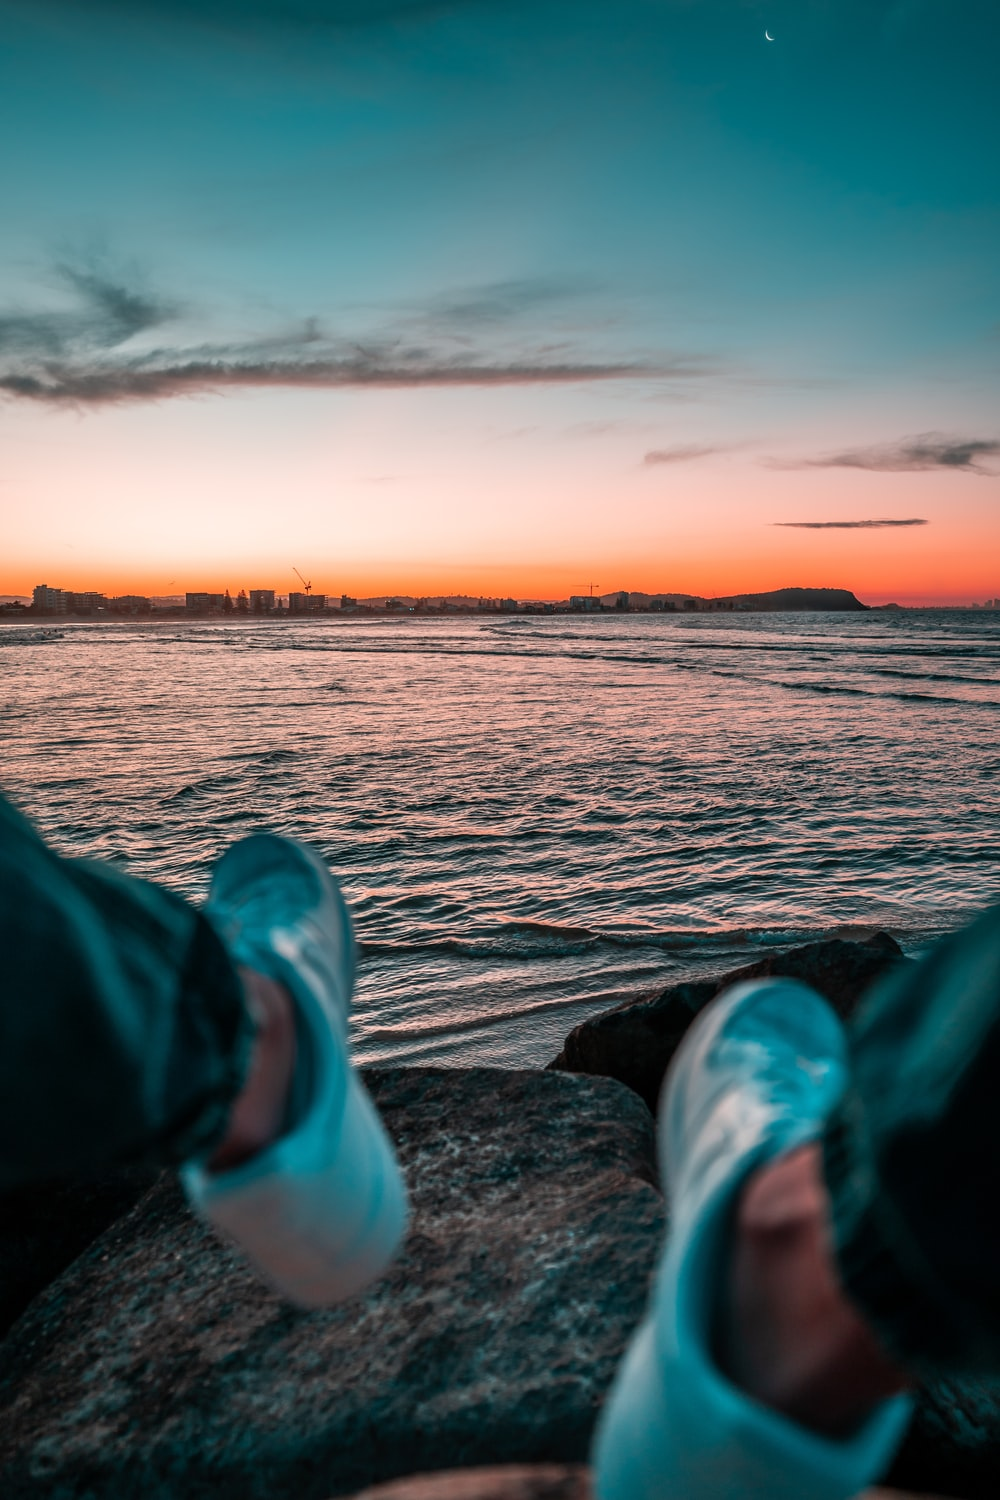 person in green pants and white sneakers sitting on rock near body of water during sunset